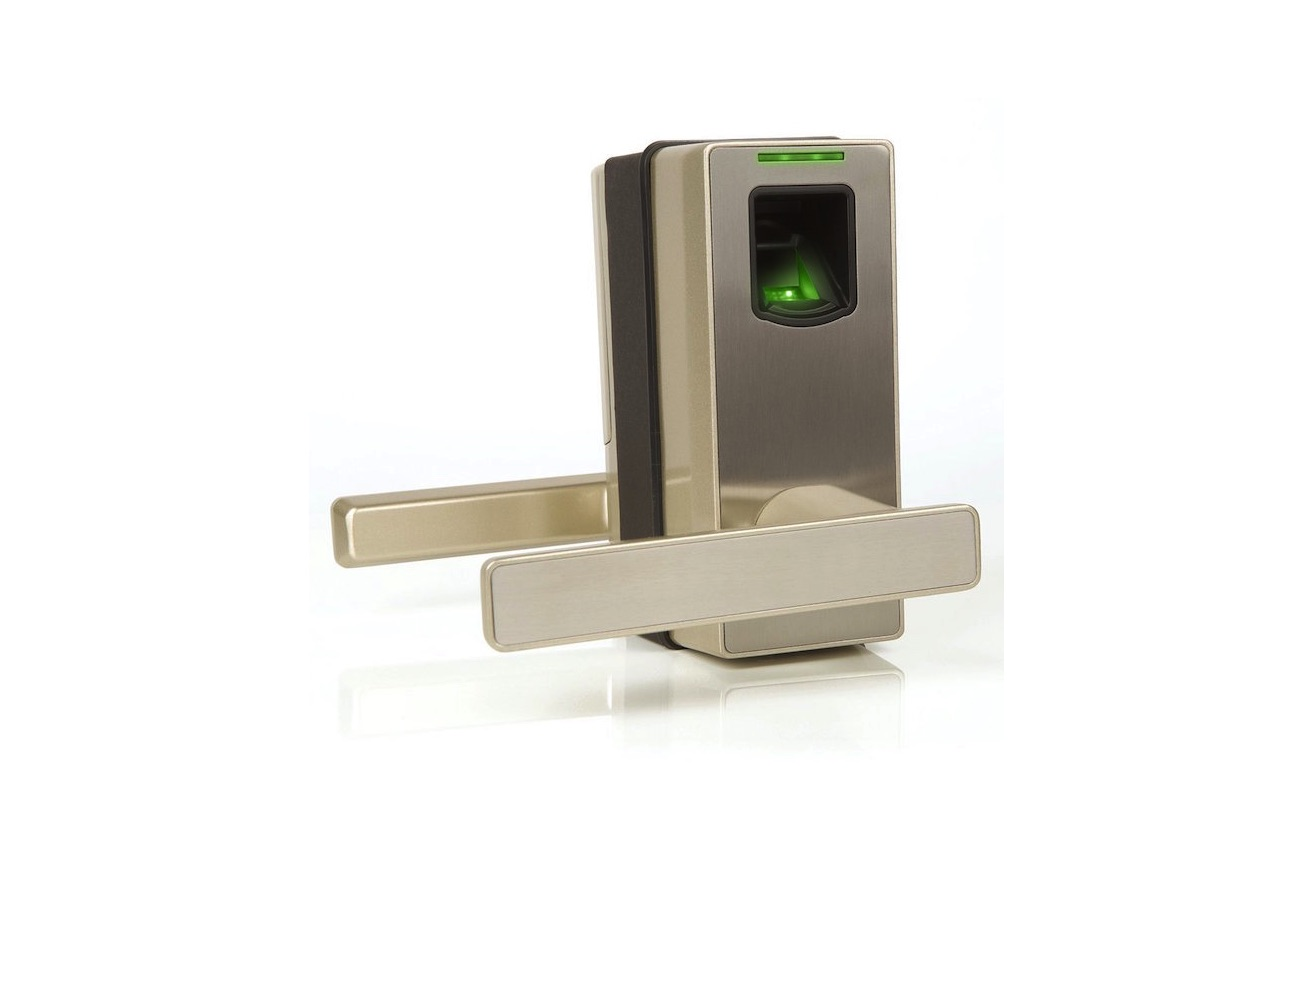 Biometric Fingerprint Lock by uGuardian